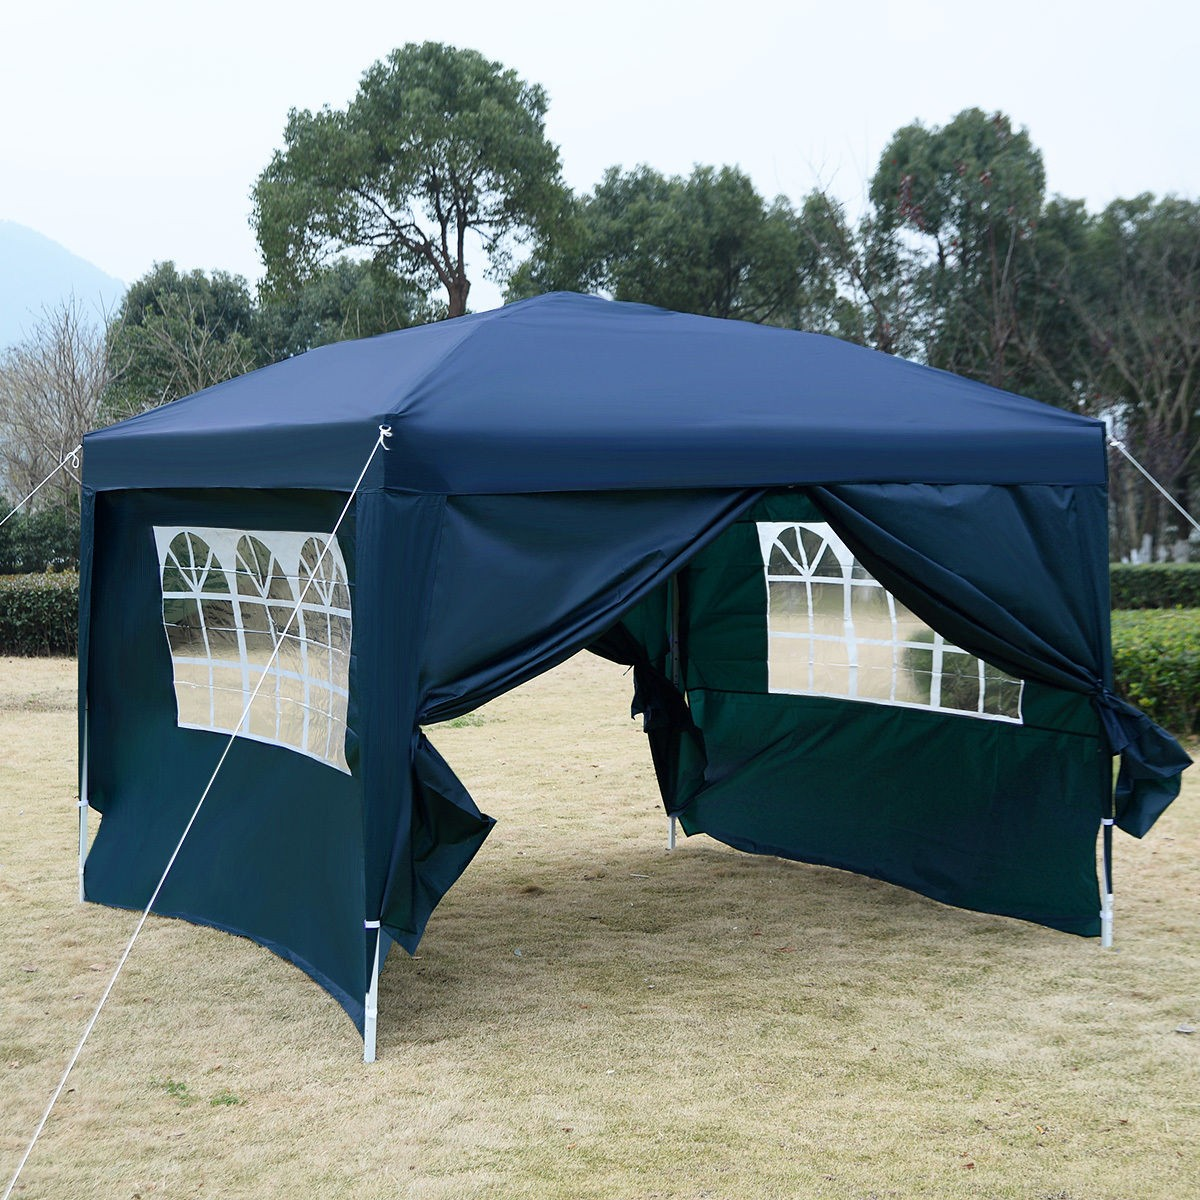 10 10 Gazebos Canopies : Ez pop up tent canopy gazebo